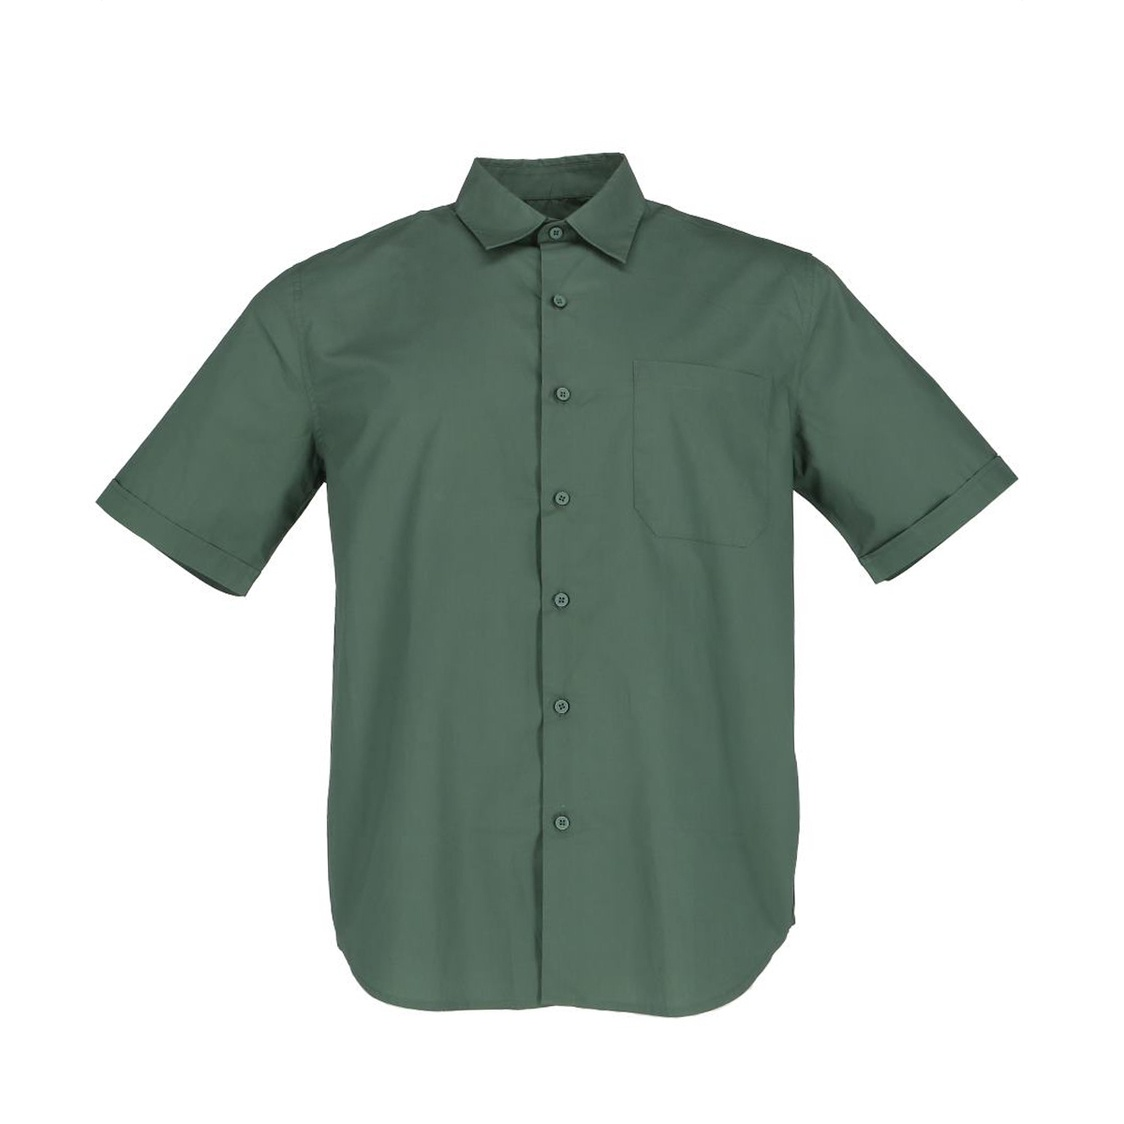 Mens Short Sleeve Shirt In Solid Dark Green